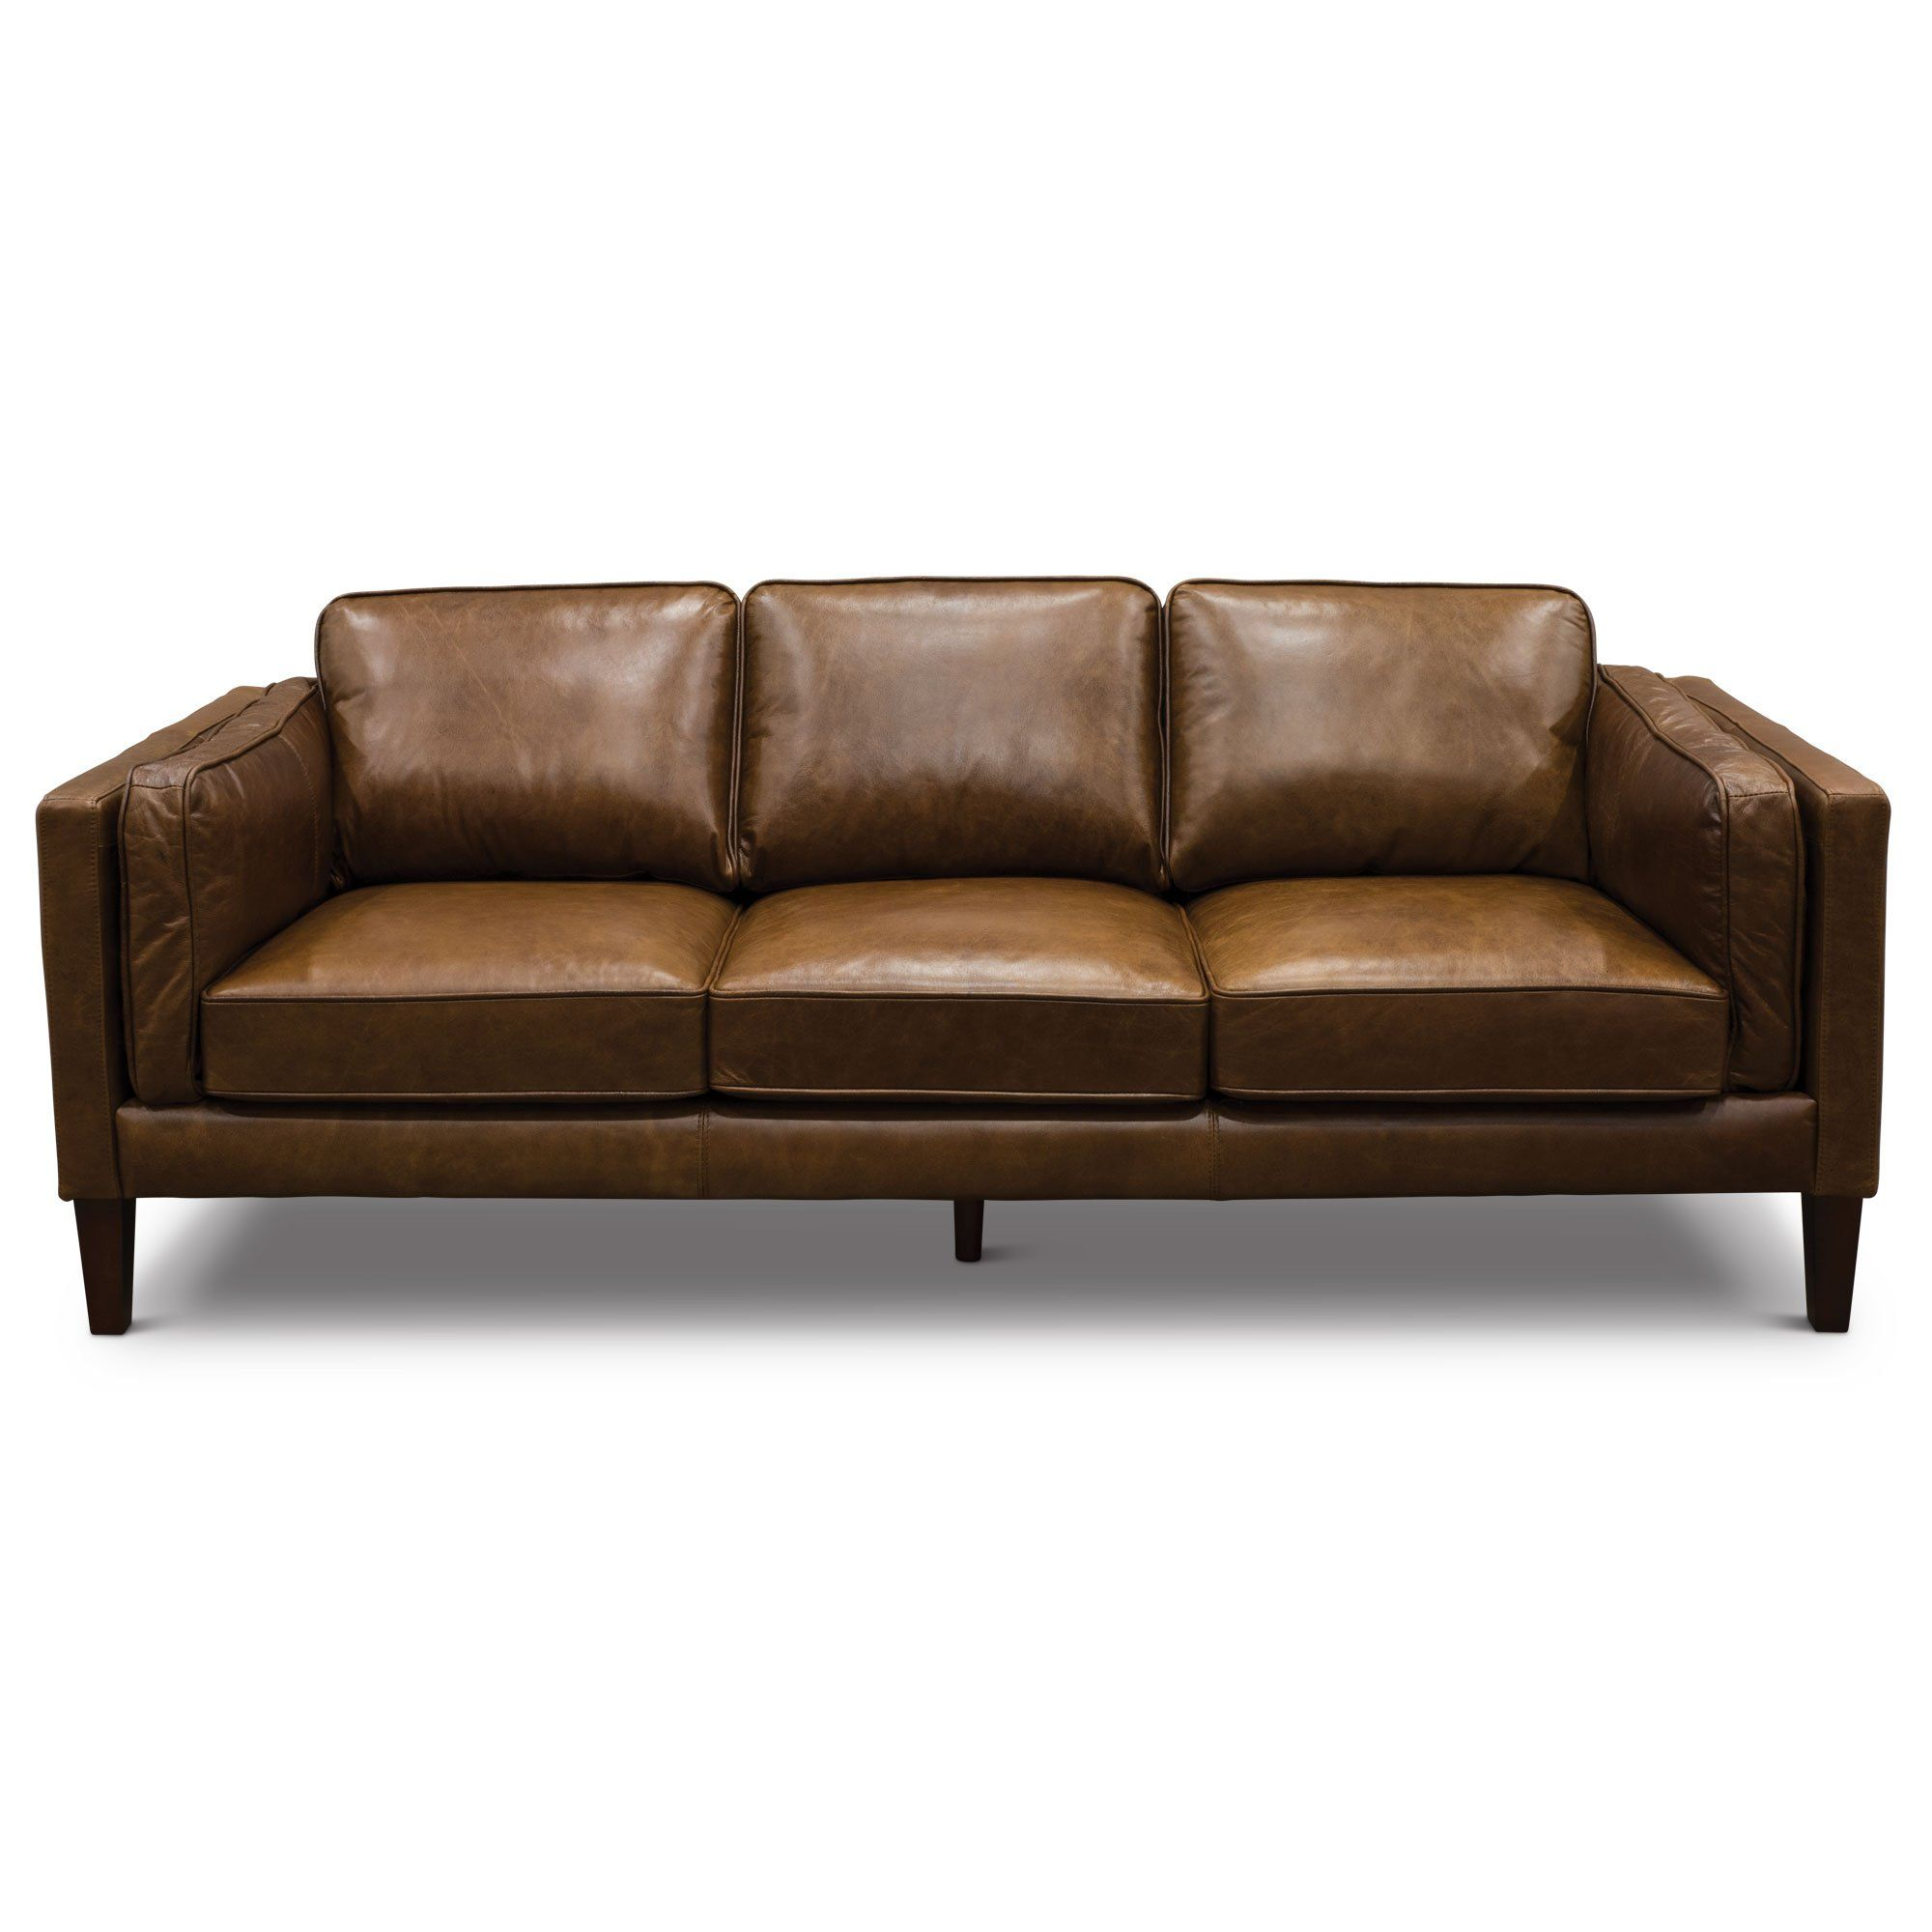 Modern Classic Cocoa Brown Leather Sofa - Brompton | RC Willey ...